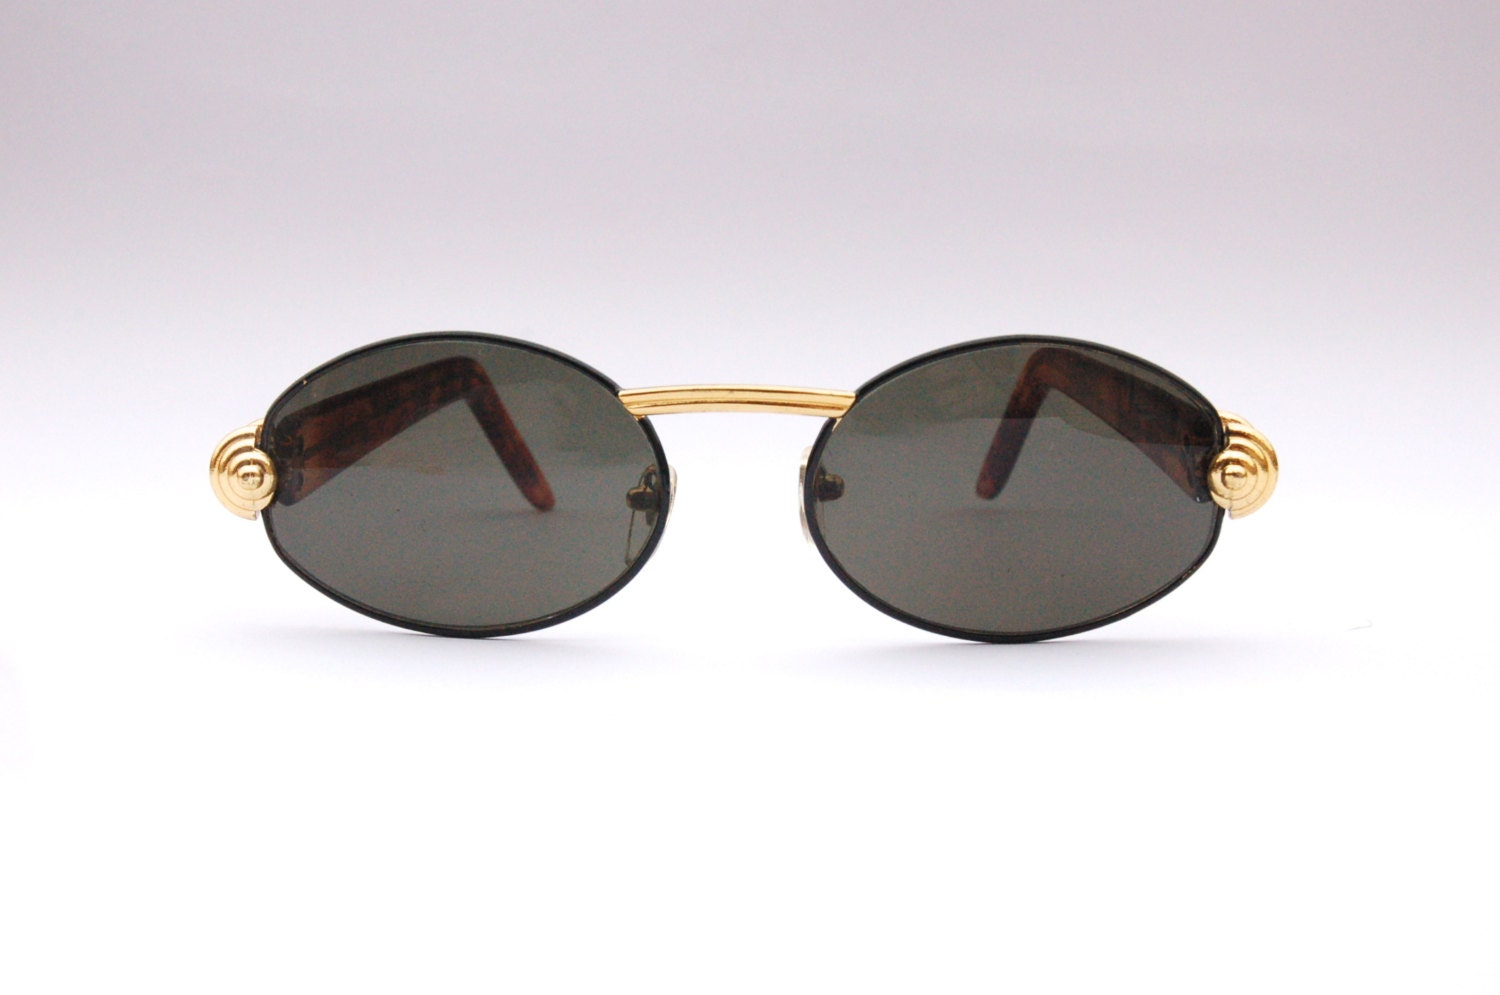 Gold Frame Oval Sunglasses : Vintage 90s Round Sunglasses / Oval Shades / w Gold Tone and